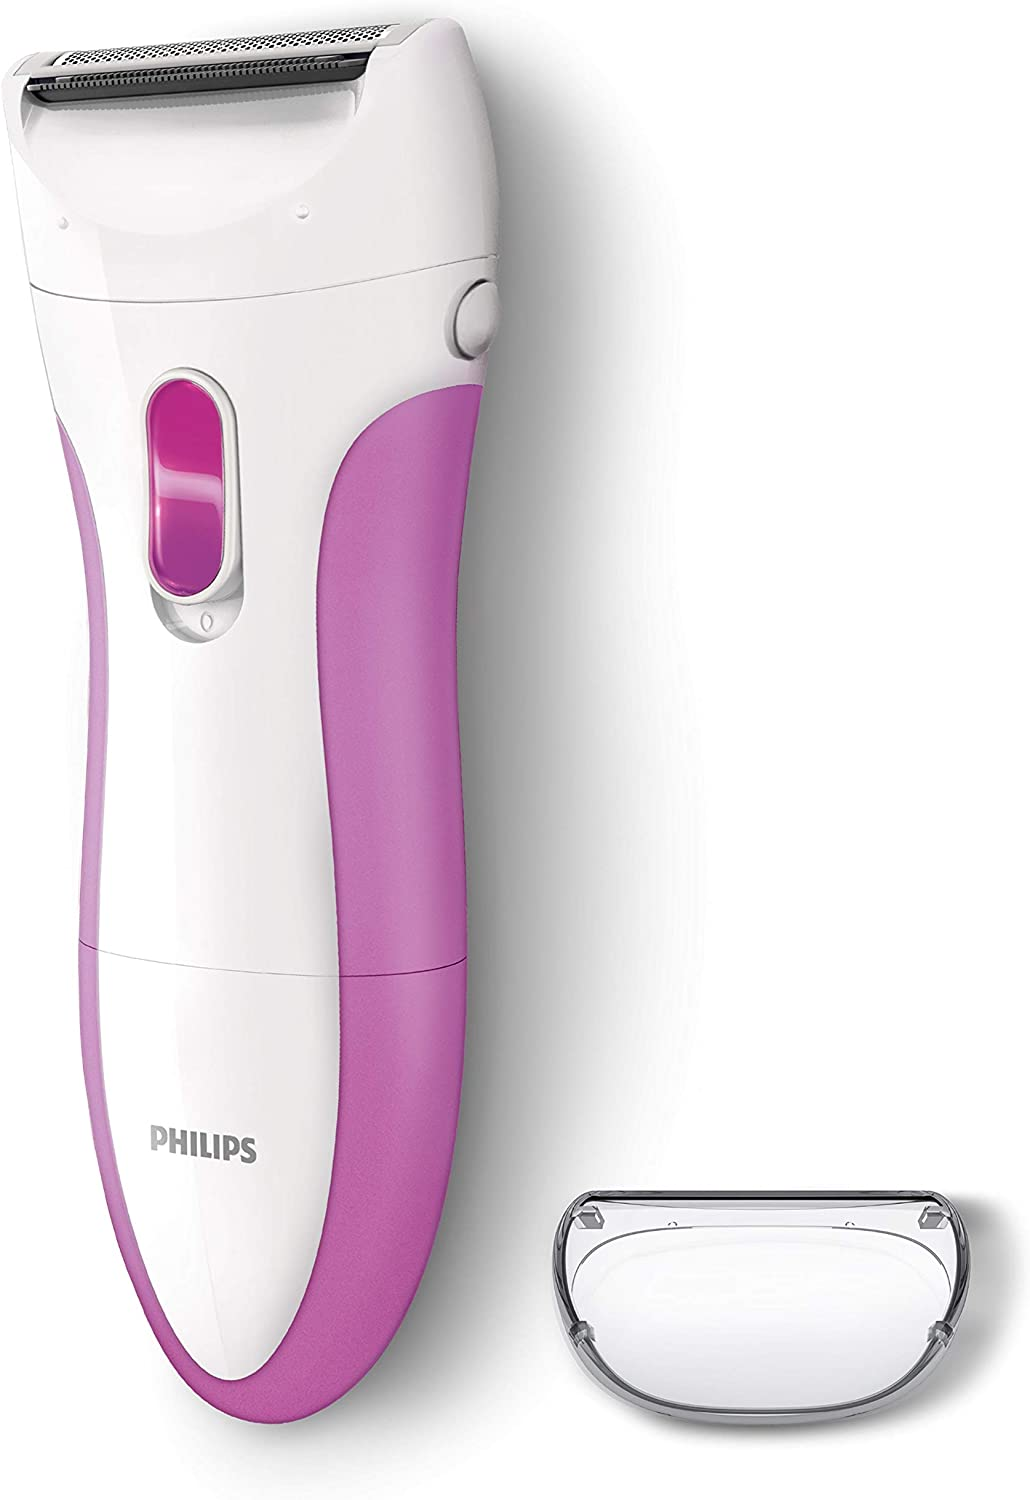 Philips HP6341/00 Ladyshave - Afeitadora femenina, color rosa ...